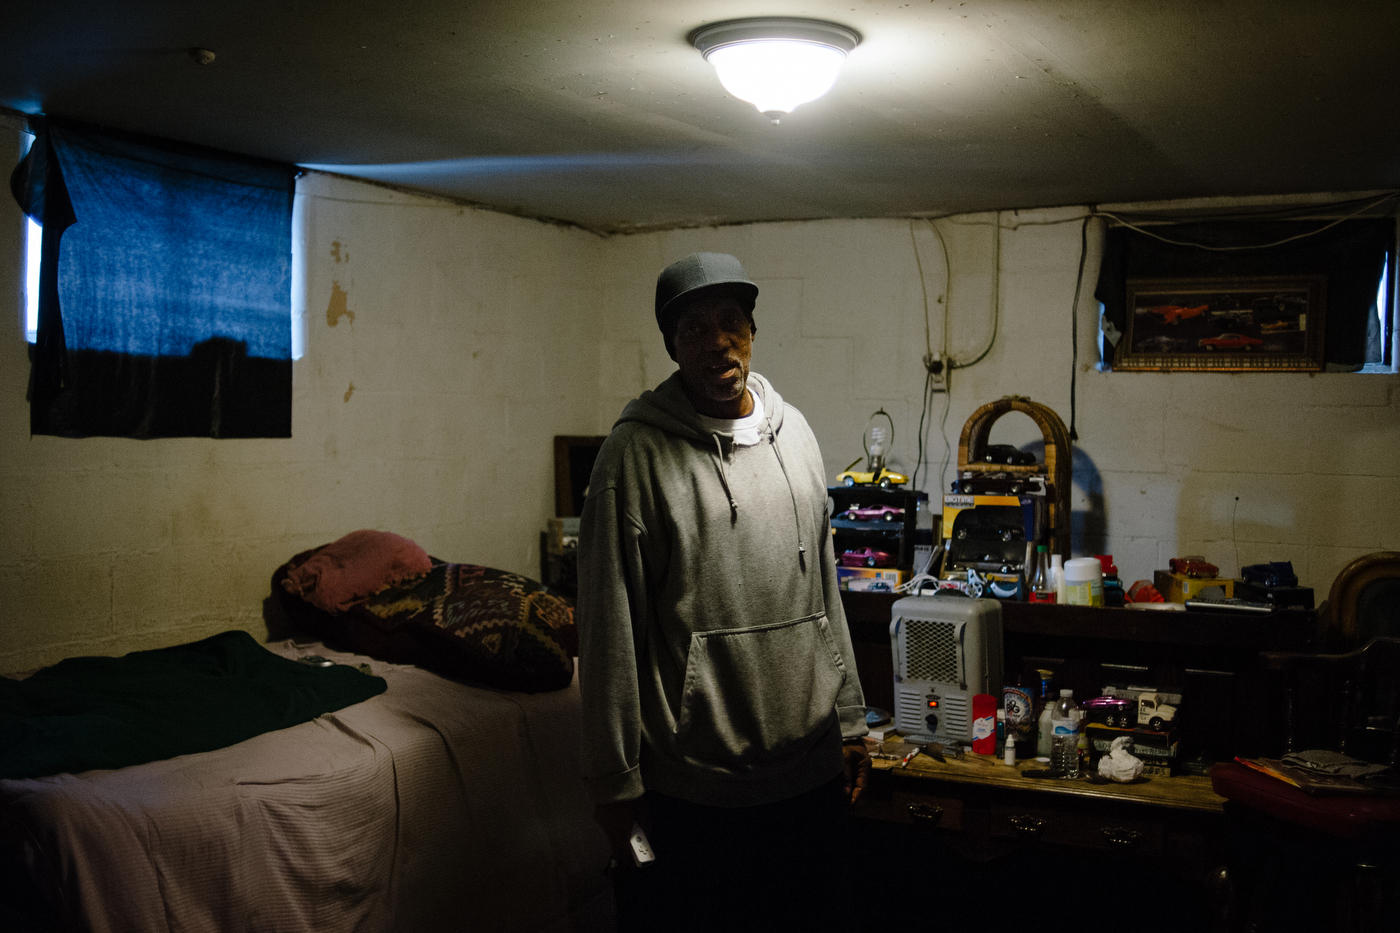 """""""My Wii and my model cars. That's what keeps me off the streets,"""" says Earl Carter in the basement of his home in Ferguson, MO. Formerly addicted to crack, Carter was honorably discharged from the Air Force but has been arrested over 20 times for traffic violations and is currently suing the city over their de facto debtors prisons."""